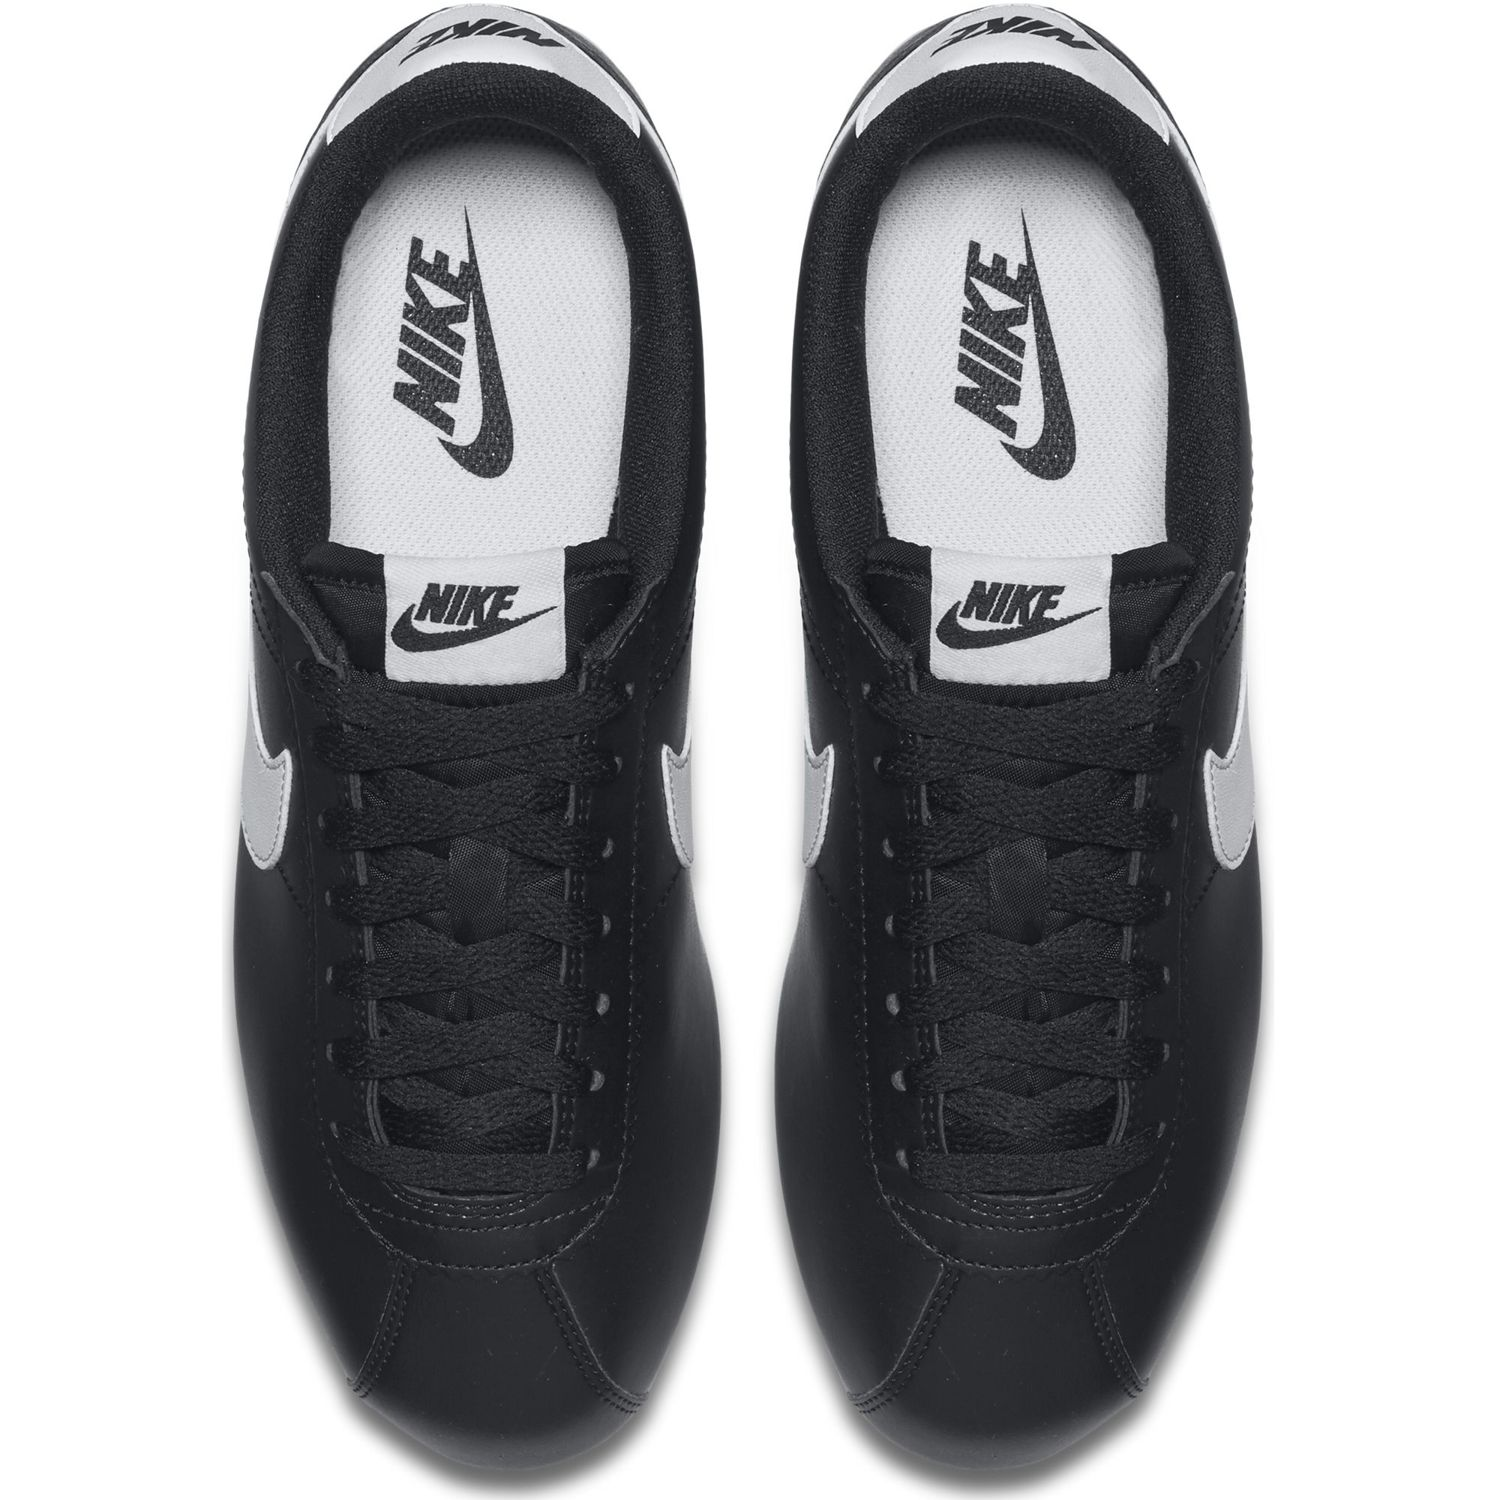 Buty męskie Nike Classic Cortez Leather Black/White 807471 010